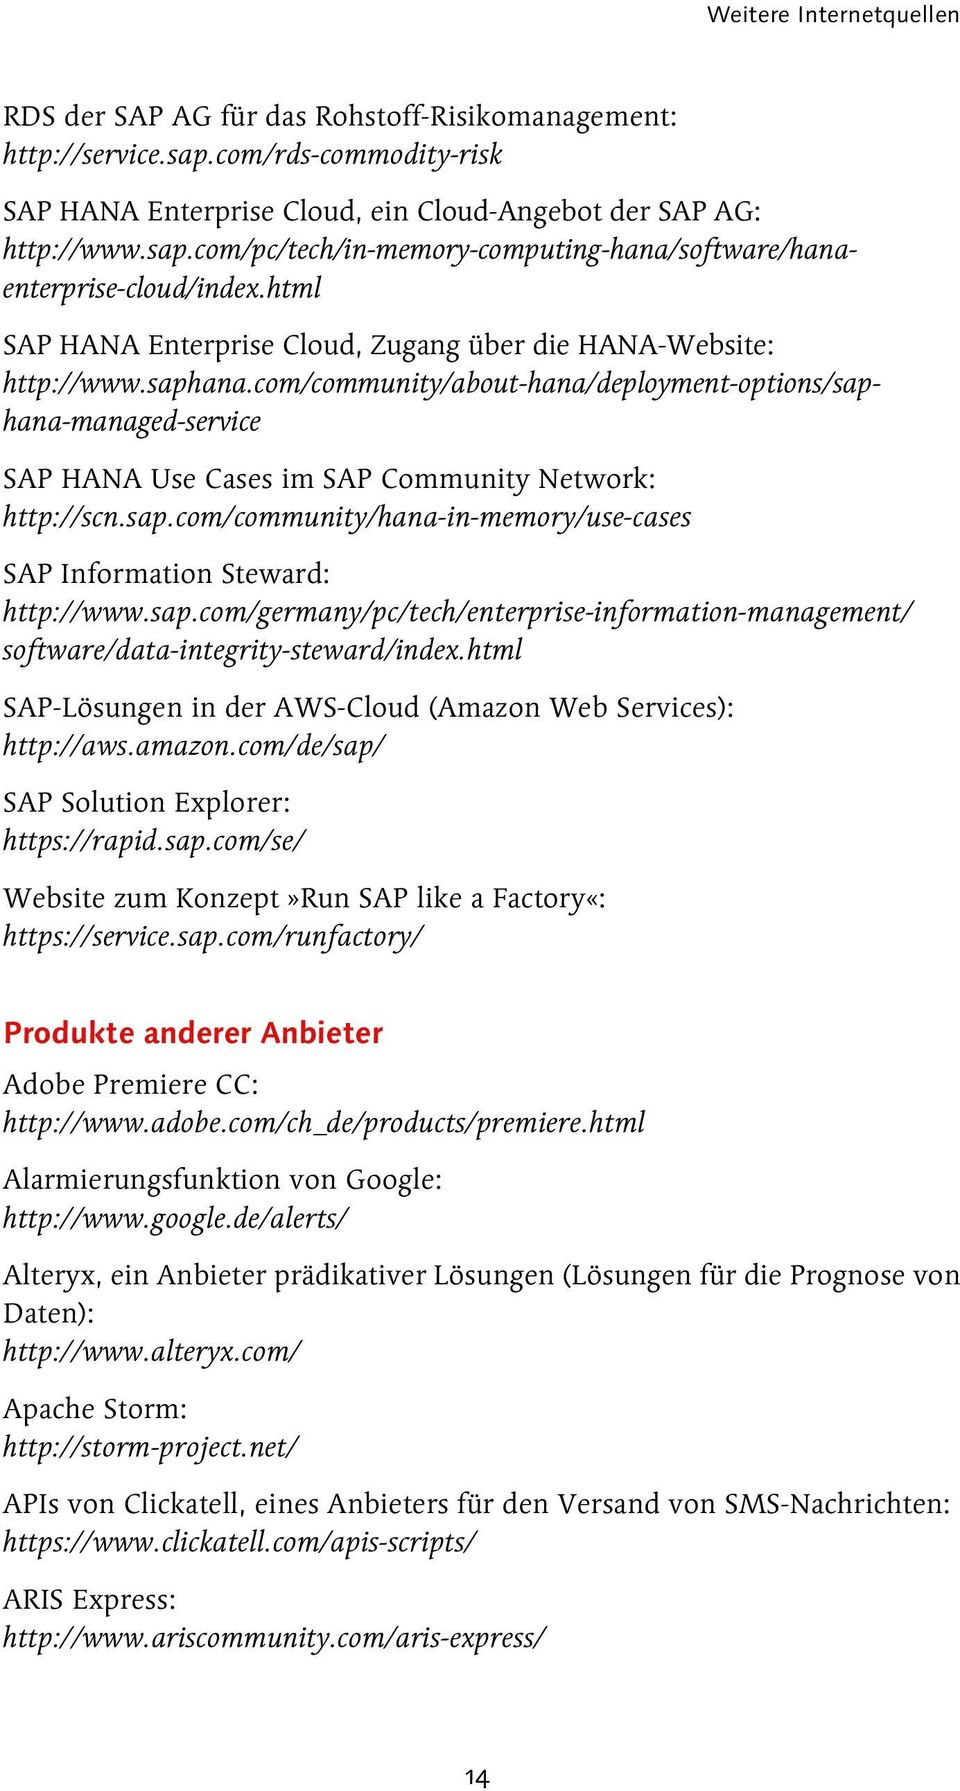 com/community/about-hana/deployment-options/saphana-managed-service SAP HANA Use Cases im SAP Community Network: http://scn.sap.com/community/hana-in-memory/use-cases SAP Information Steward: http://www.